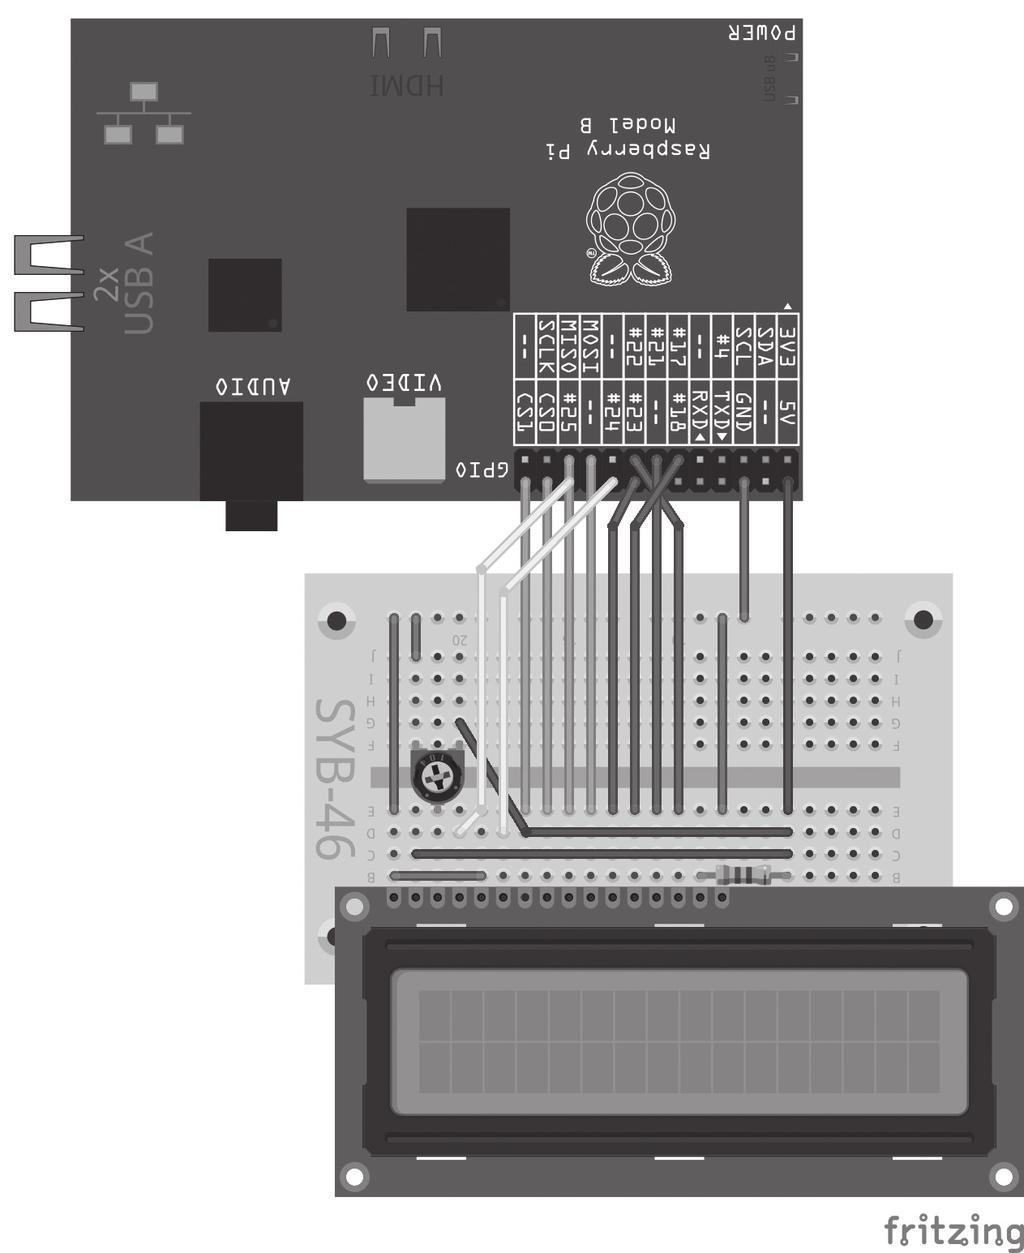 Schematics And Layout Mightyohm Titelei 33 Seite 1 Franzis Raspberry Pi Maker Kit Pdf 10 Lc Display In 8 Bit Mode The Next Project Shows How To Use